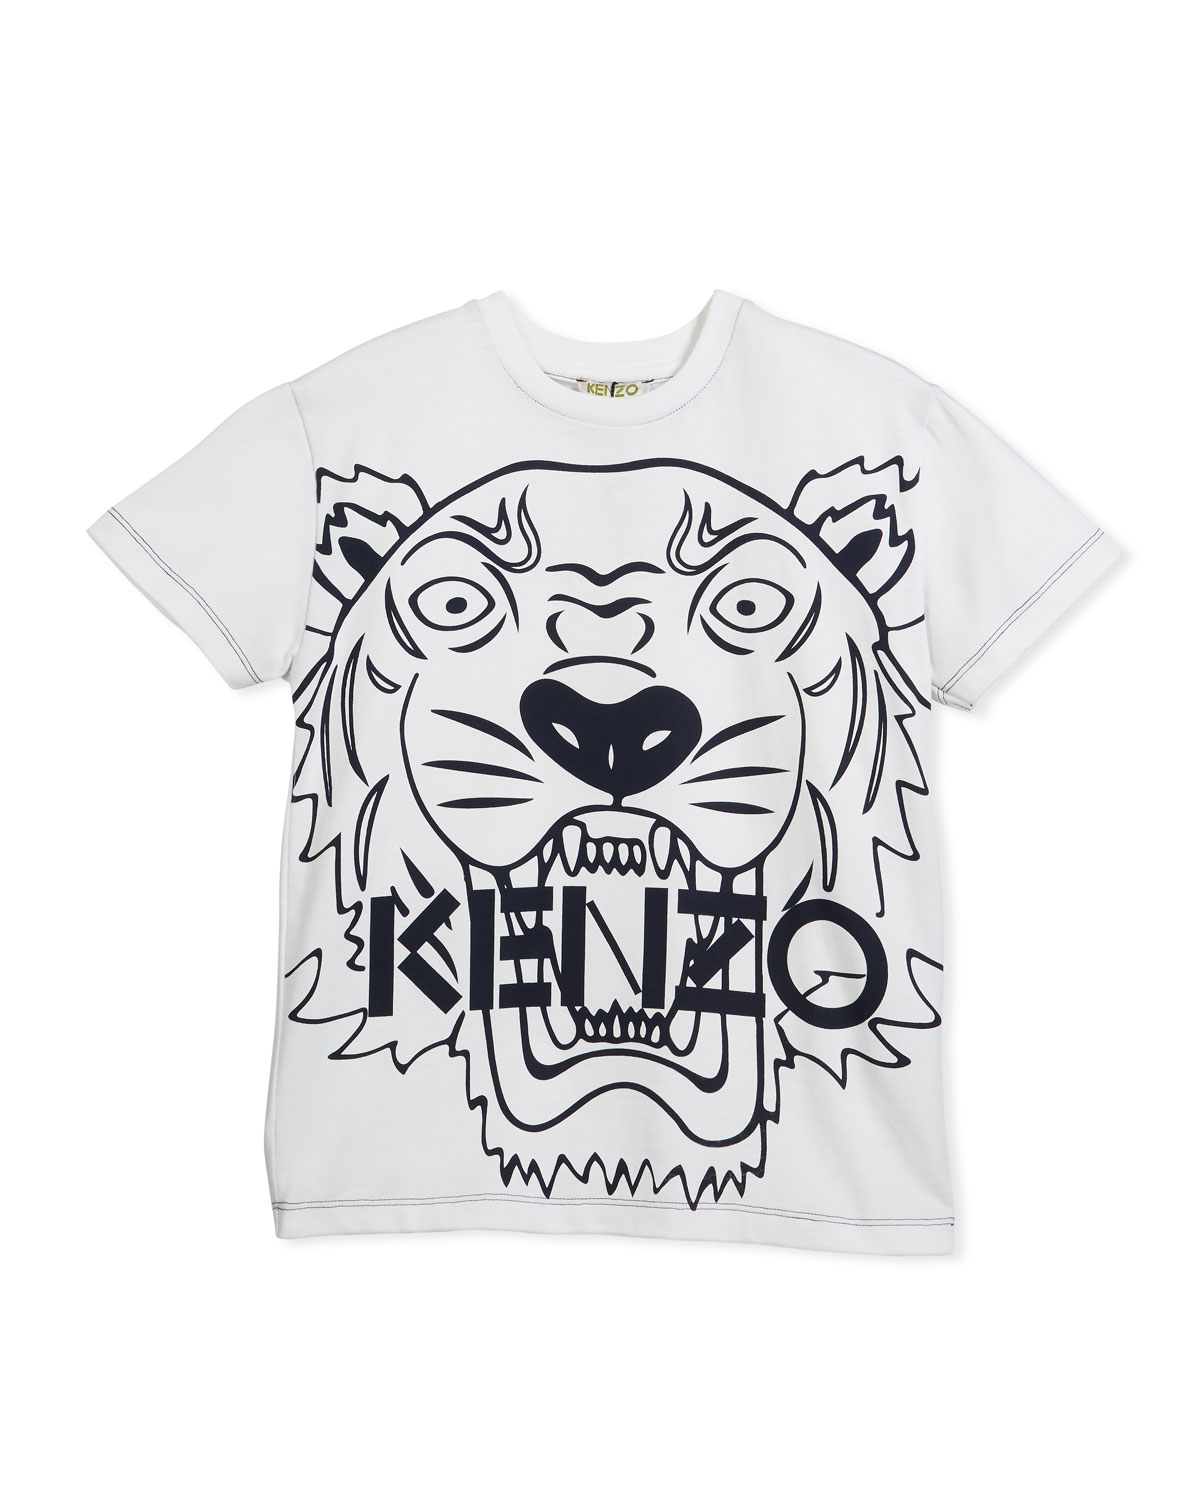 9078c477a Kenzo Oversized Tiger Face Graphic T-Shirt, Size 8-12   Neiman Marcus